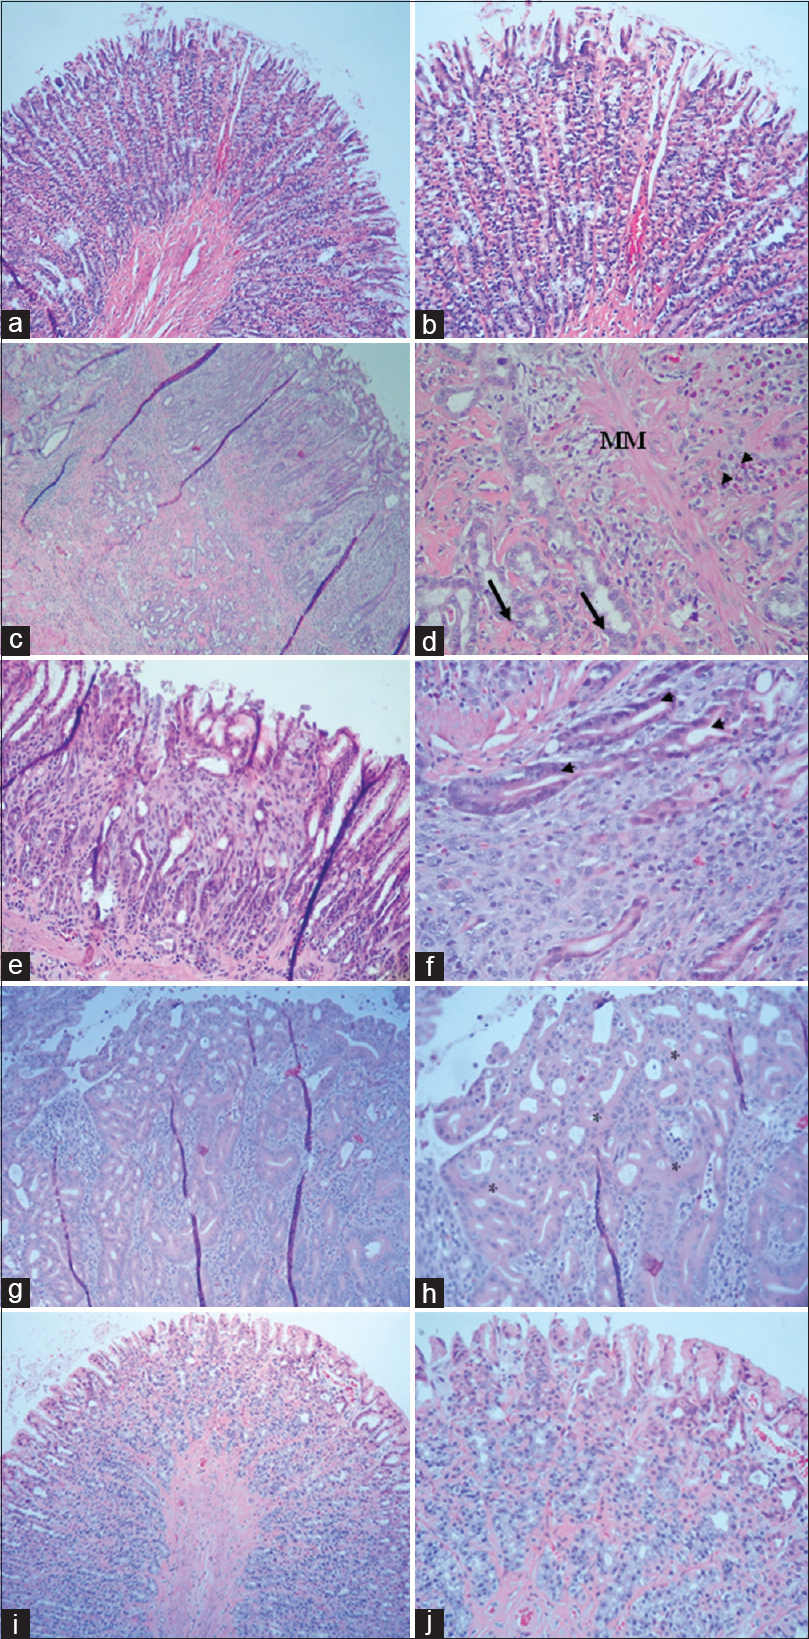 Figure 7: Histopathological changes of rat gastric tissue in all experimental groups. (a and b) CO group; (c-h) <i>Hp +</i> MNU group; (i and j) <i>Hp</i> + MNU + Cur group (H and E, ×40, ×100). Arrows denote the invasion of malignant cuboidal epithelial cells to submucosal layer. Arrowheads denote dysplastic gland. Asterisks denote ADC of gastric mucosa. MM: Muscularis mucosal layer; CO: Control rats; <i>Hp</i> + MNU: <i>Helicobacter pylori</i> infection and <i>N</i>-methyl-<i>N</i>-nitrosourea administration; <i>Hp</i> + MNU + Cur: <i>H. pylori</i> infection and <i>N</i>-methyl-<i>N</i>-nitrosourea administration supplemented with 60 mg/kg curcumin for 30 weeks; ADC: Adenocarcinoma